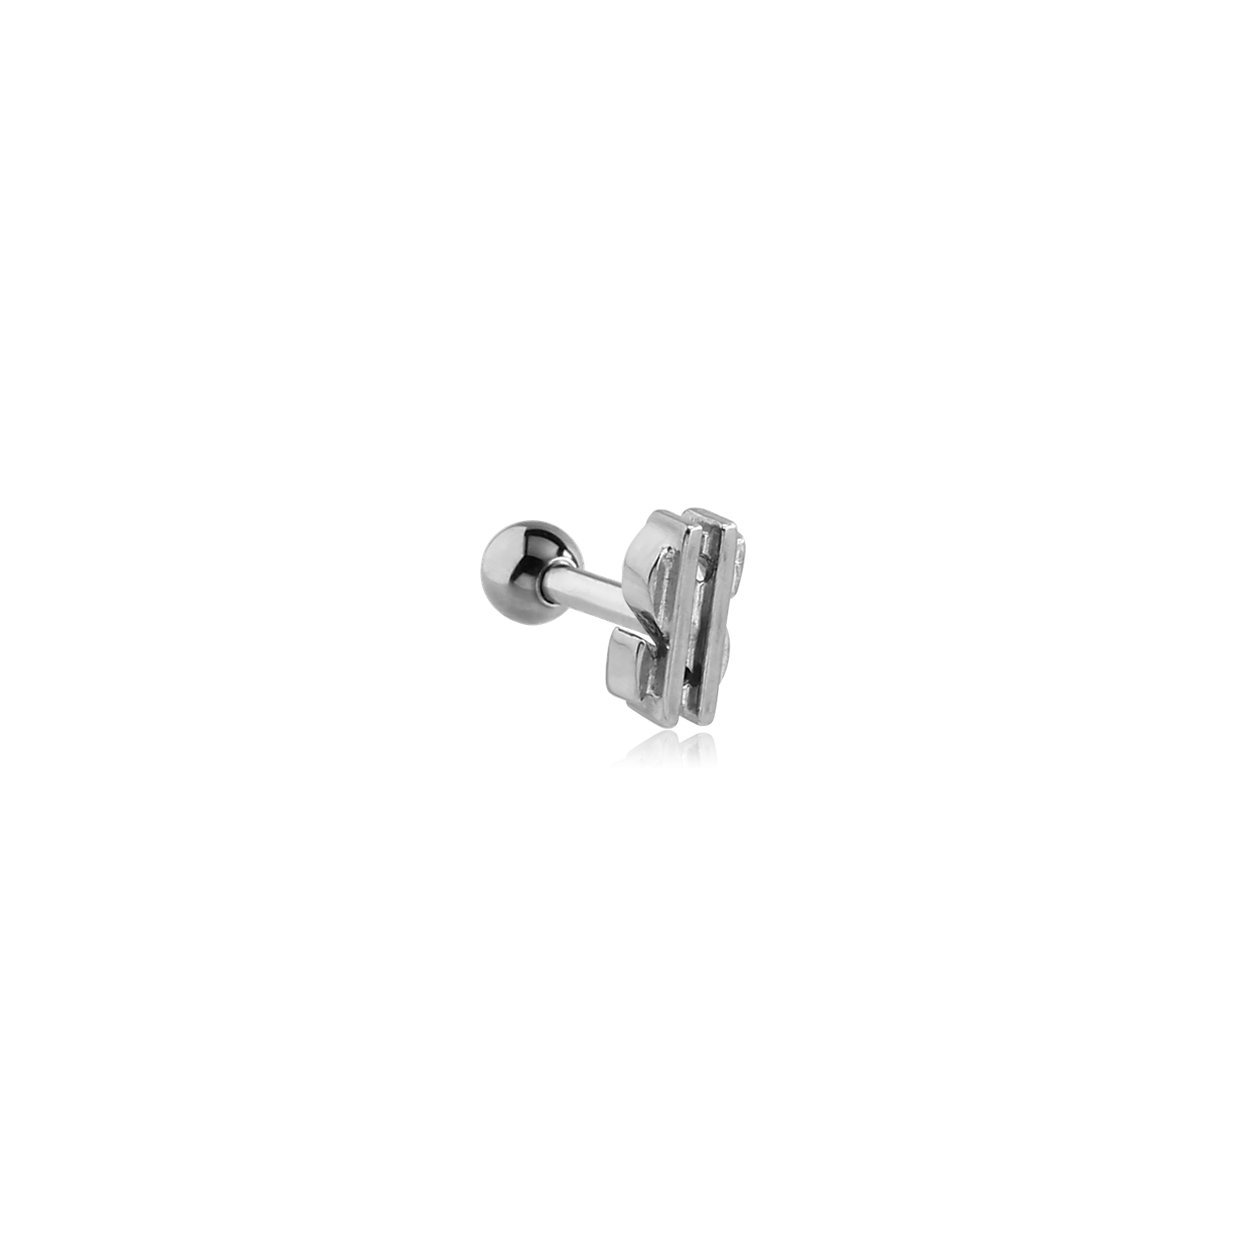 Bubble Body Jewelry Surgical Steel Internally Threaded Double Jeweled Barbell 1.6mm Gauge 14g 1//16